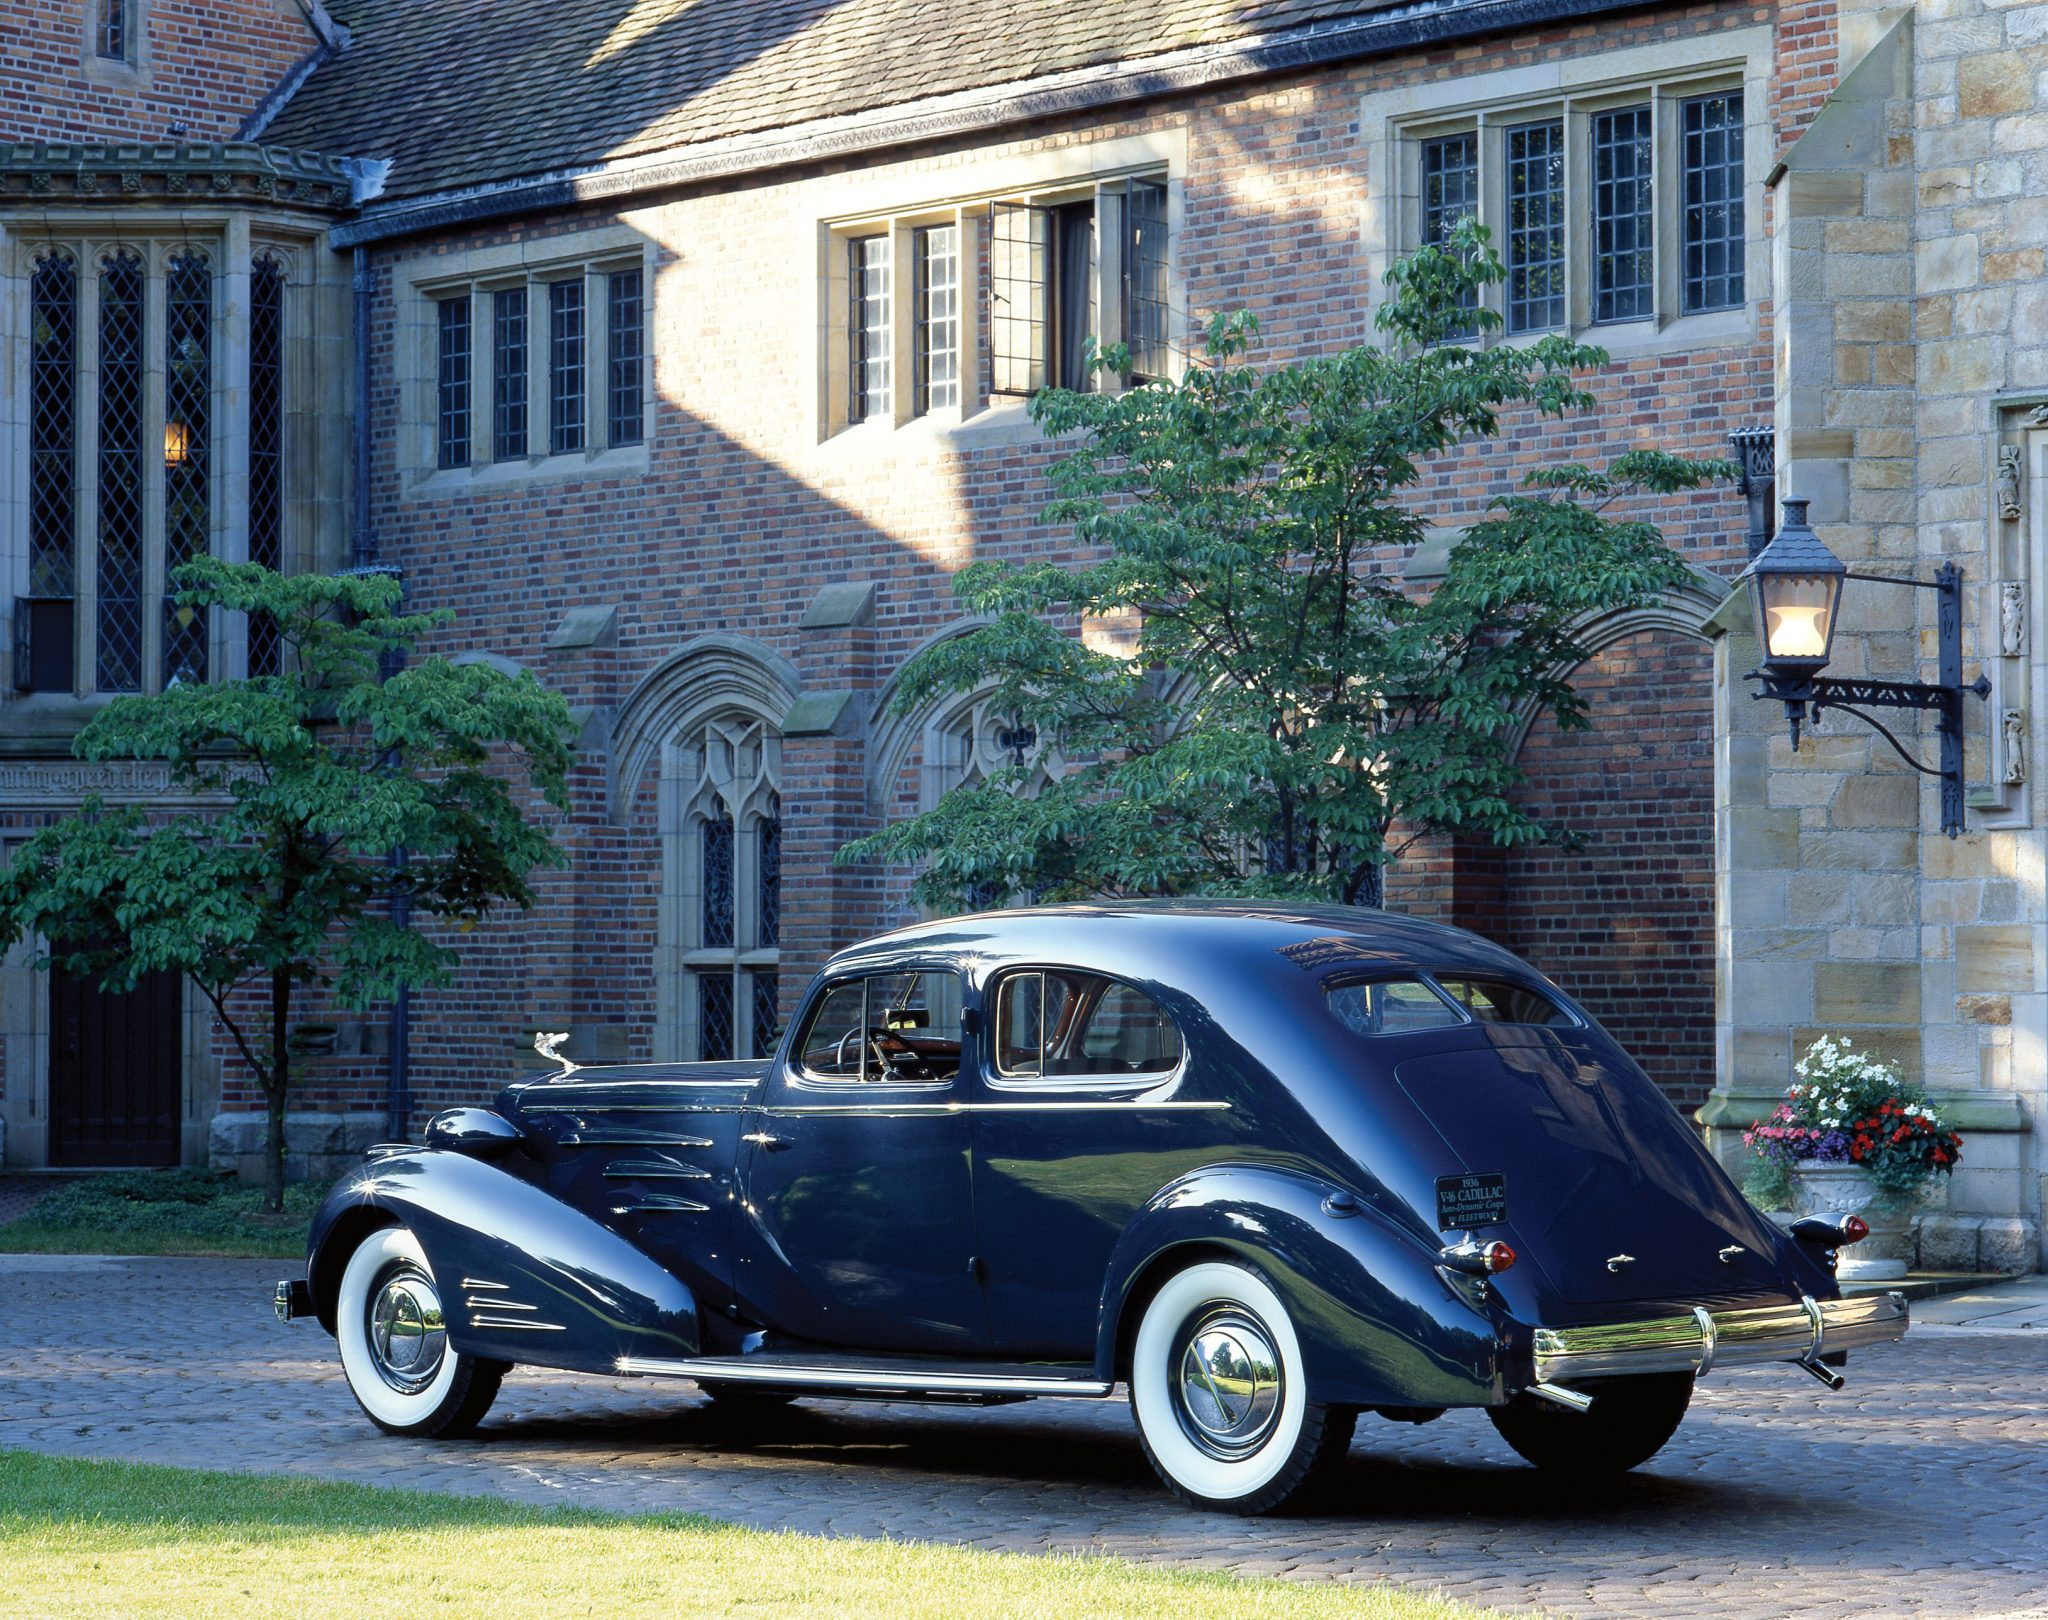 1933 Cadillac V16 Aero-Dynamic Coupe Side and Rear